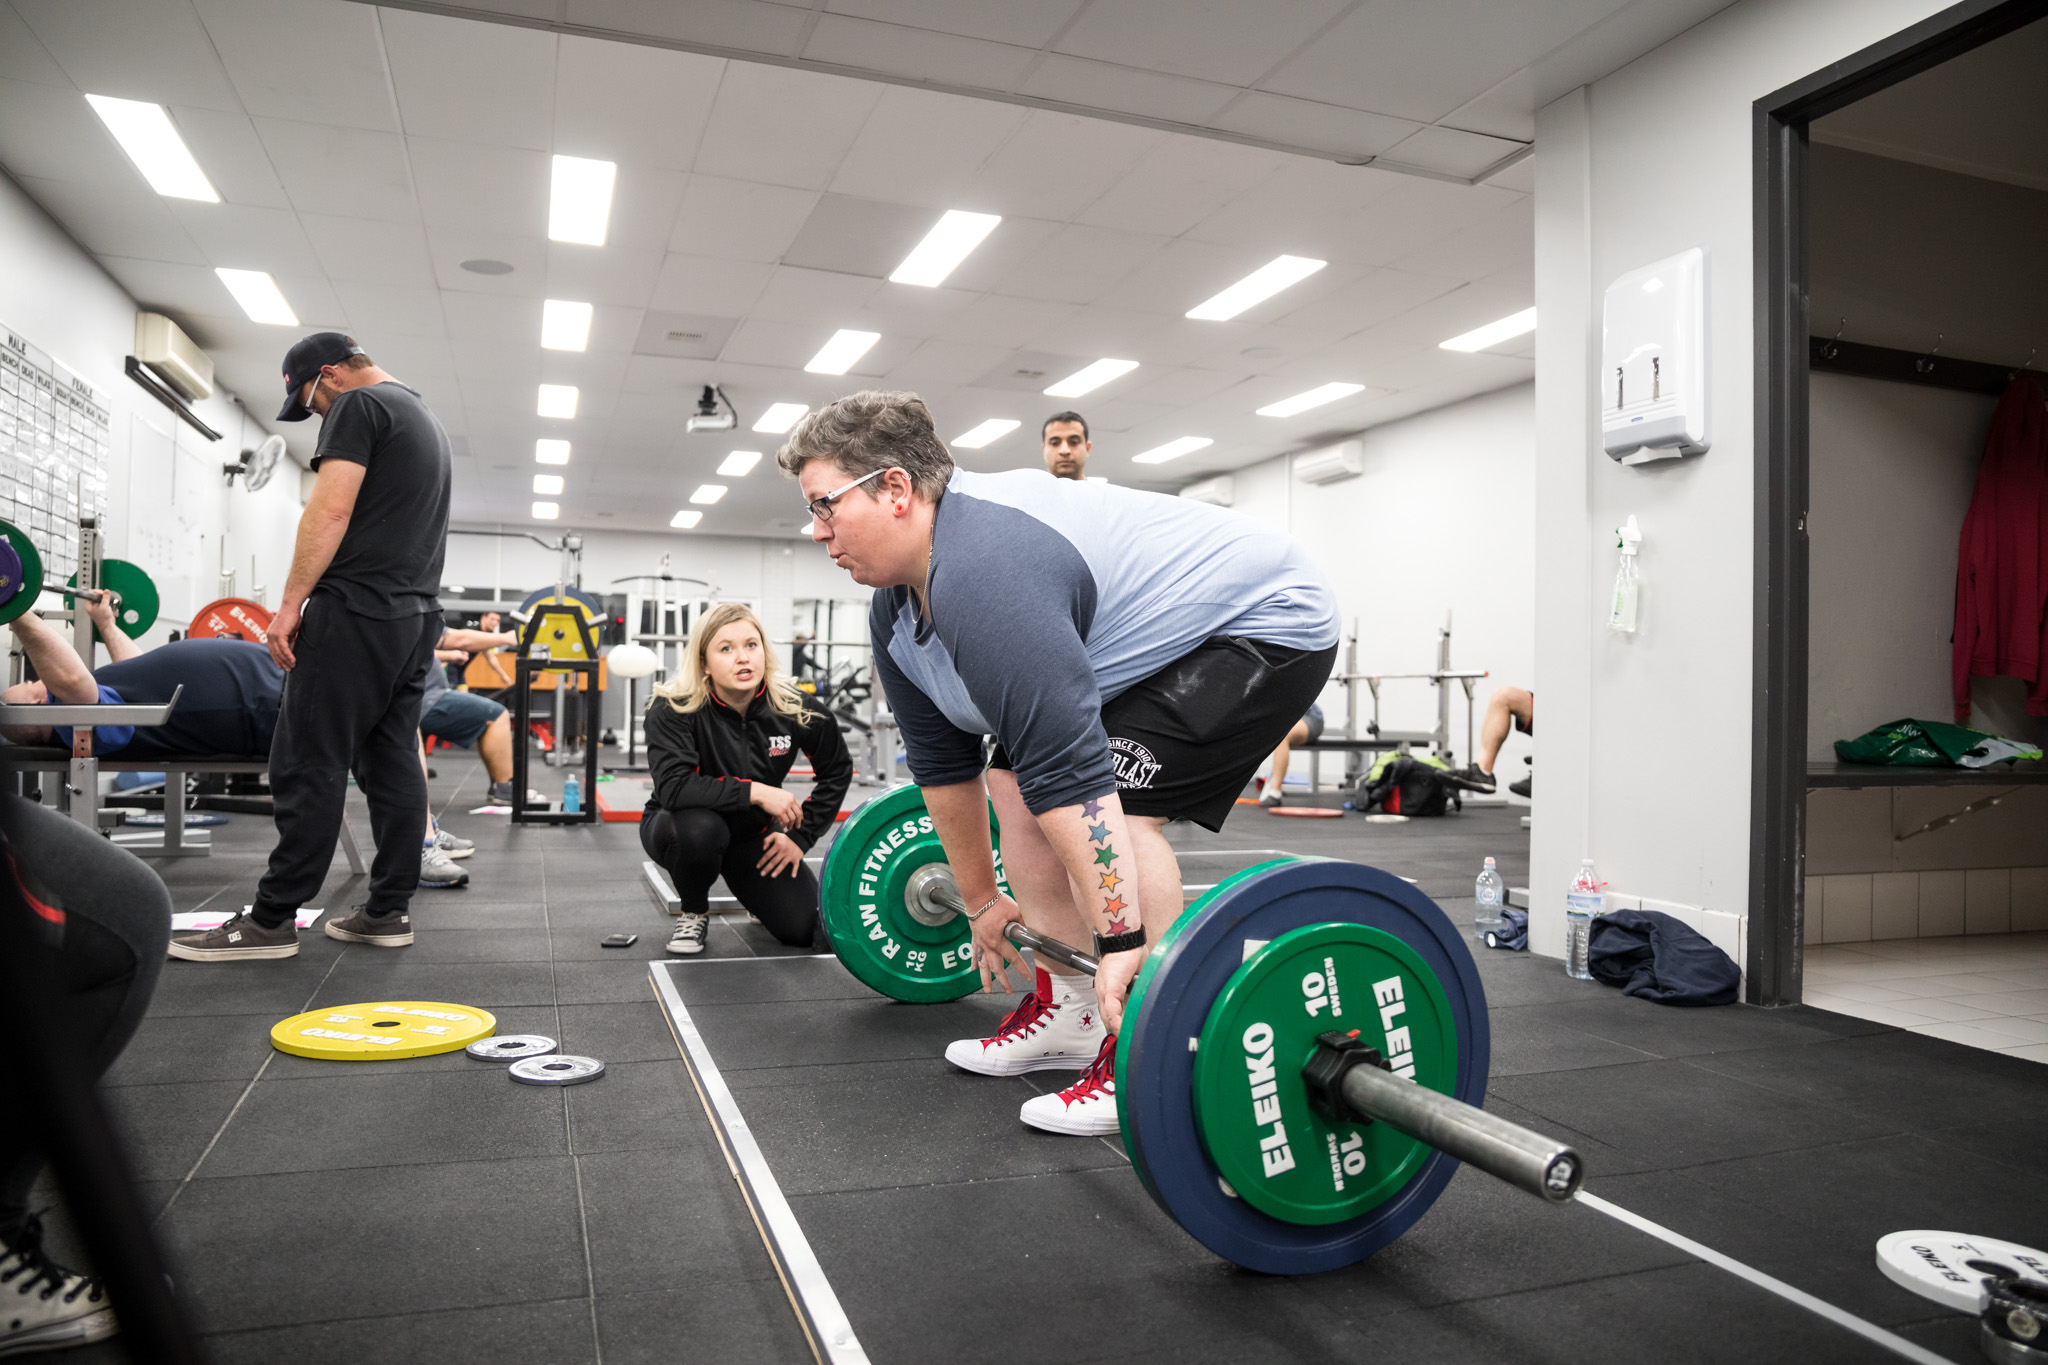 Standard Gym Membership - Have some experience and after a gym that offers the best equipment, community, and coaches? This option is for you! Access all hours.$25 P/W - $18 P/W for students